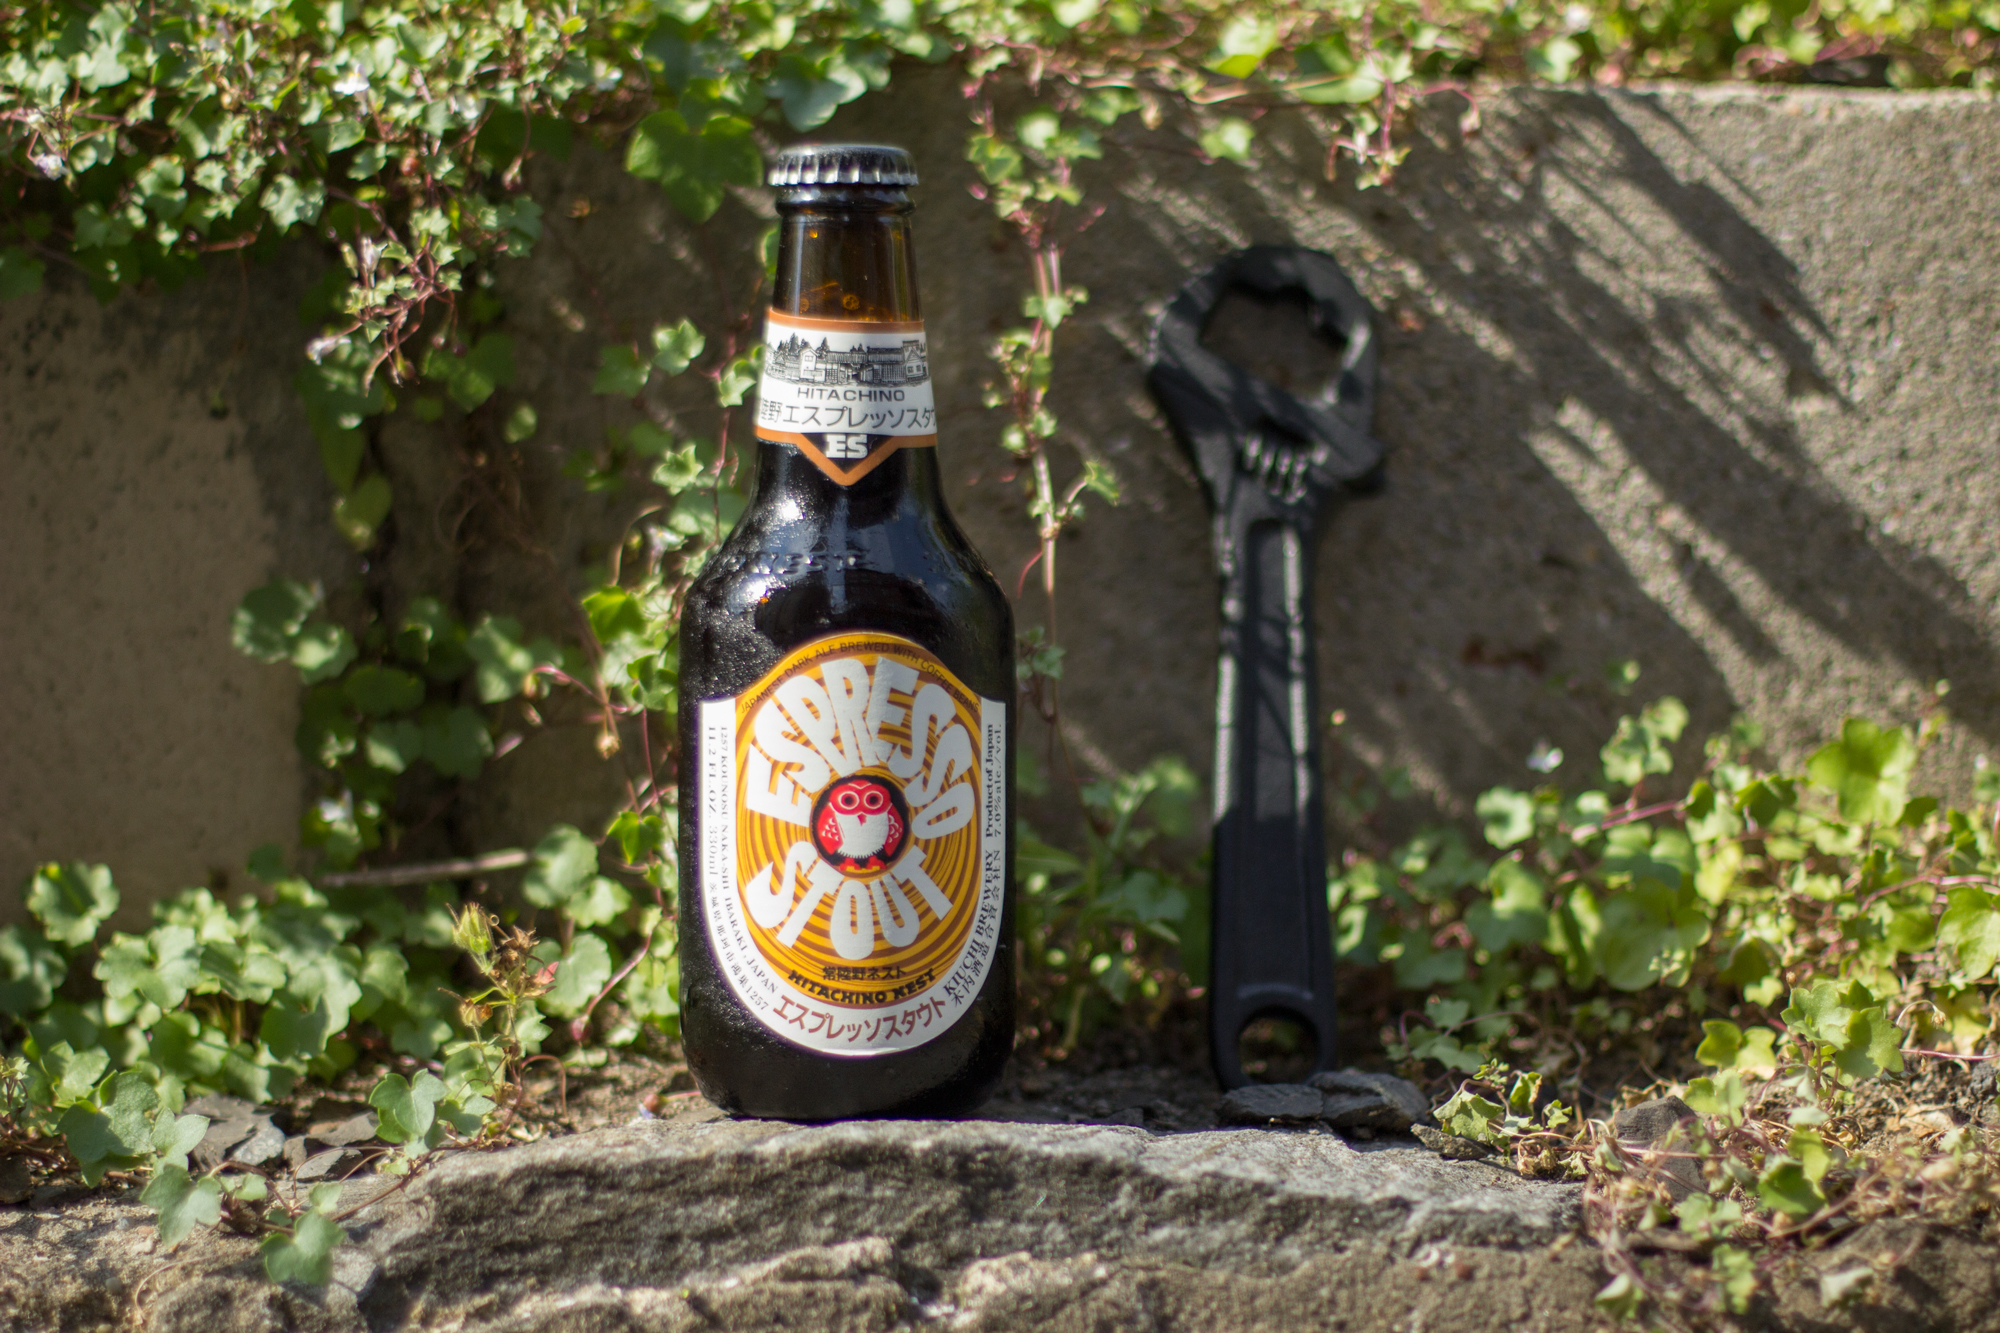 Hitachino Nest  : Espresso Stout and our  cast iron wrench bottle opener .